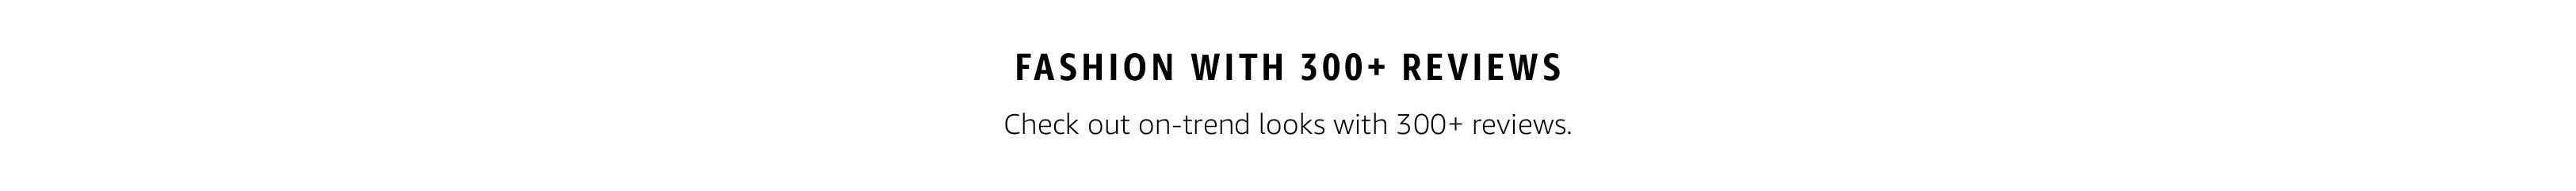 Fashion with 300+ Reviews